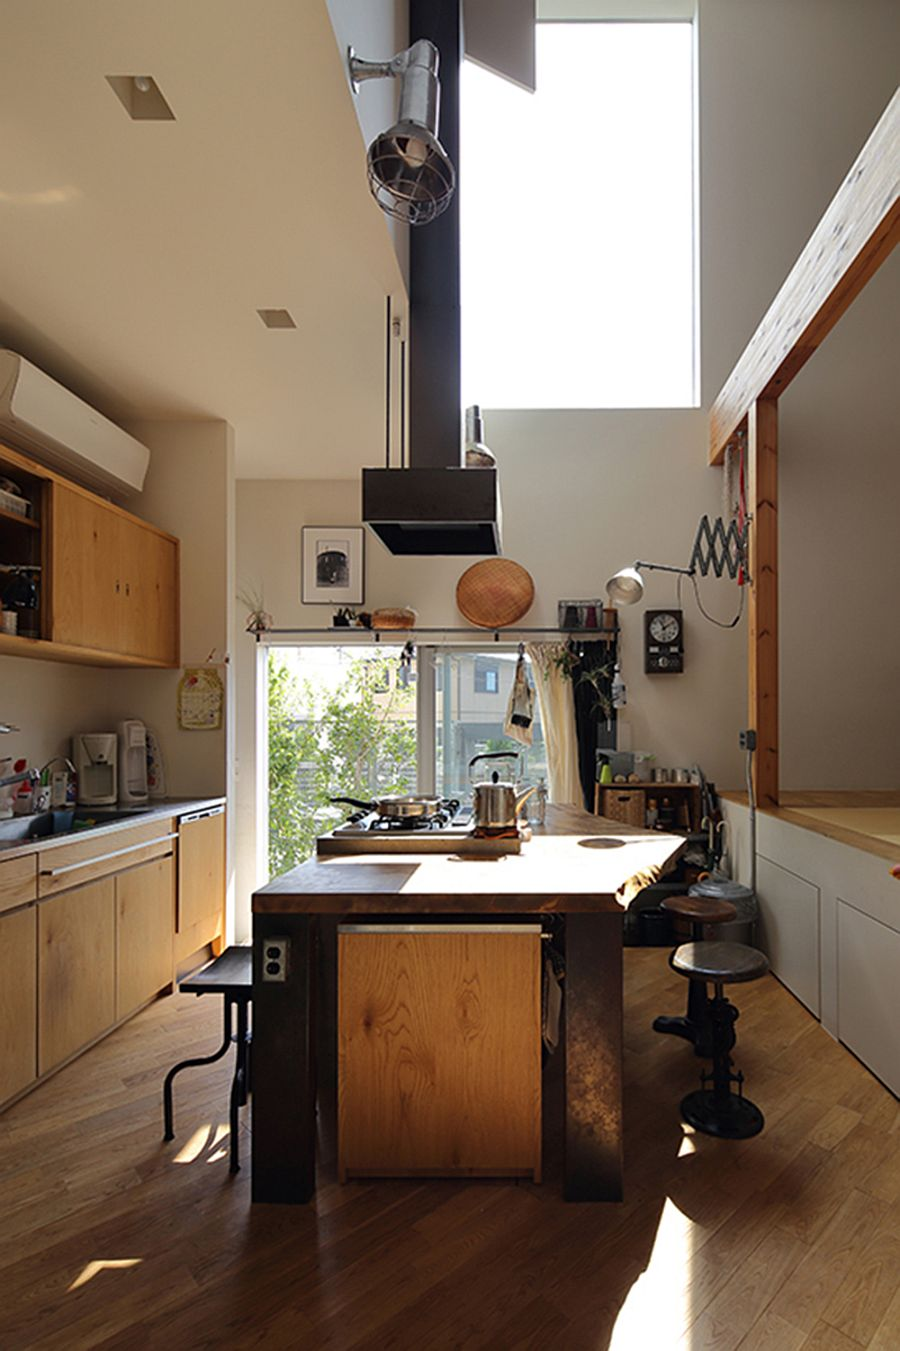 Sunlight illuminates the kitchen